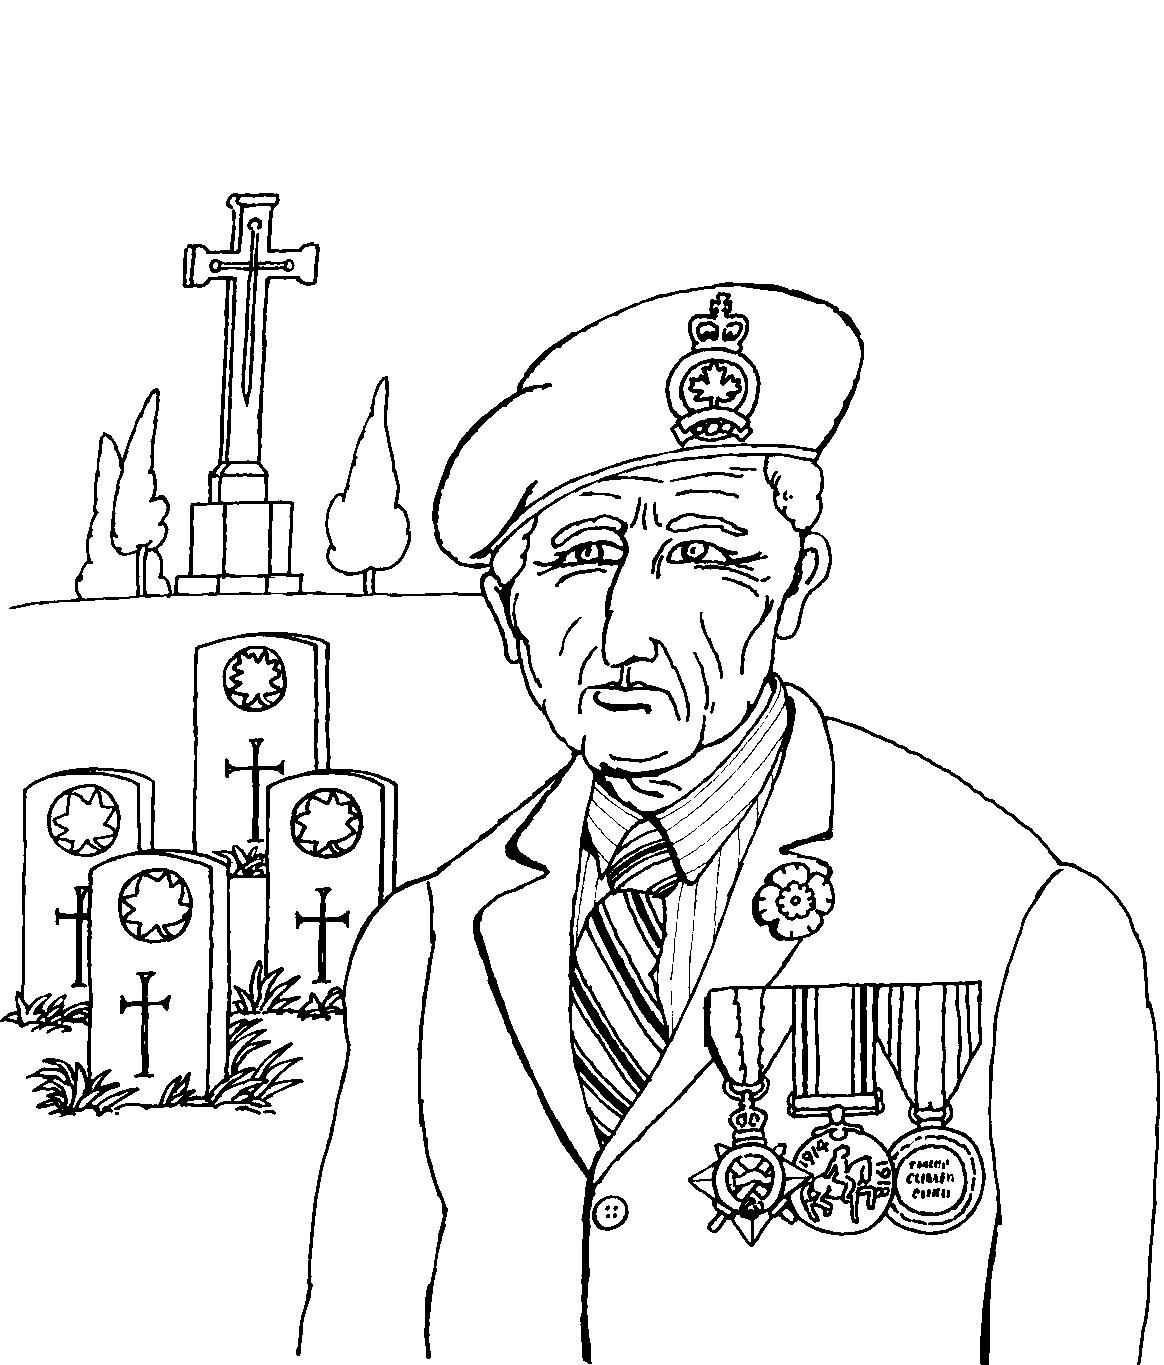 Pin By Tamie Petersen On Coloring Pages Coloring Pages Coloring Books Veterans Day Coloring Page